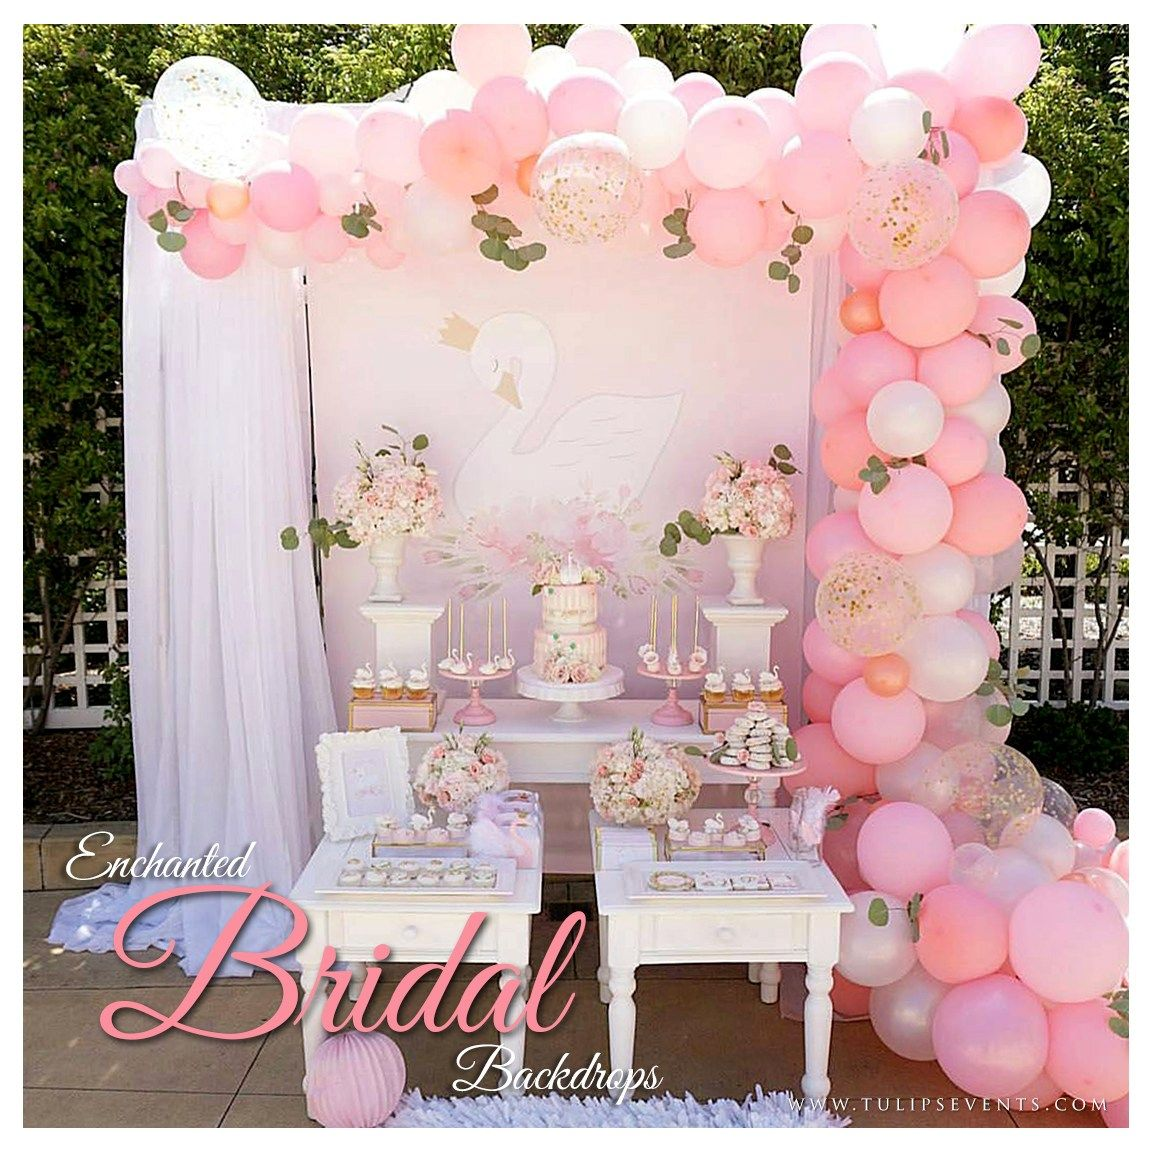 17 Best Bridal Shower Party Themes Decor Ideas In Pakistan Tulips Event Management Bridal Shower Party Theme Bridal Shower Party Swan Baby Shower